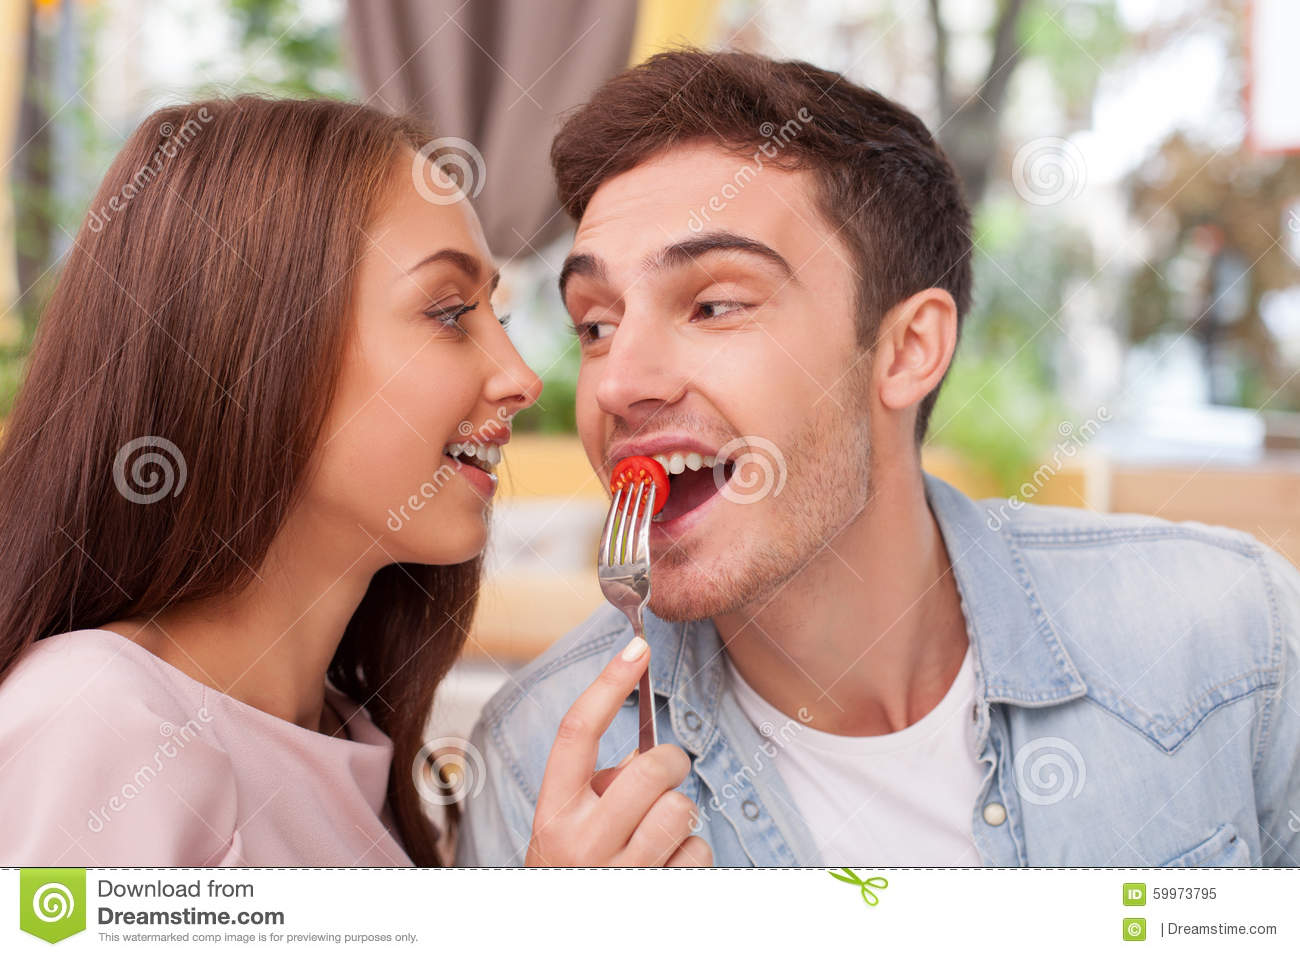 boyfriend flirting with ex girlfriend Dreaming about your current boyfriend's ex-girlfriend reflects your own feelings of insecurity you wonder if you measure up in a way, you feel that she is still a lingering part of your current relationship, whether it is physical or psychological top flirting to dream that you are flirting or that someone is flirting with you.